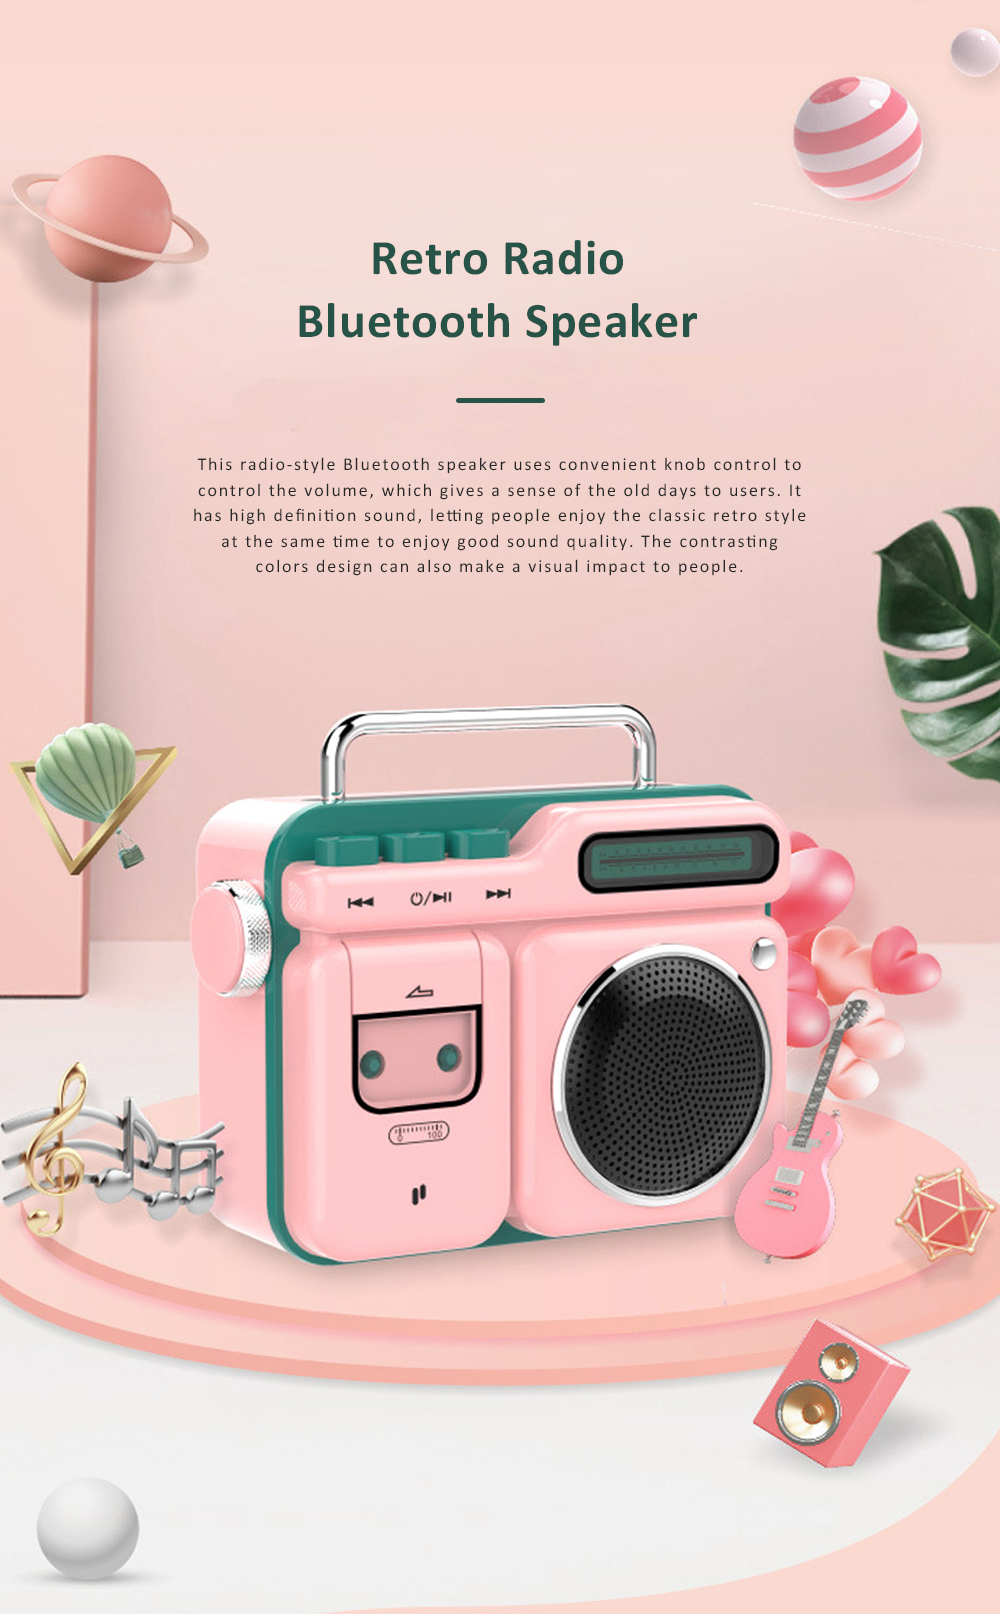 Mini Retro Radio Bluetooth Speaker Portable Vintage Radio High Definition Audio BT 4.2 Bluetooth Speakers 0